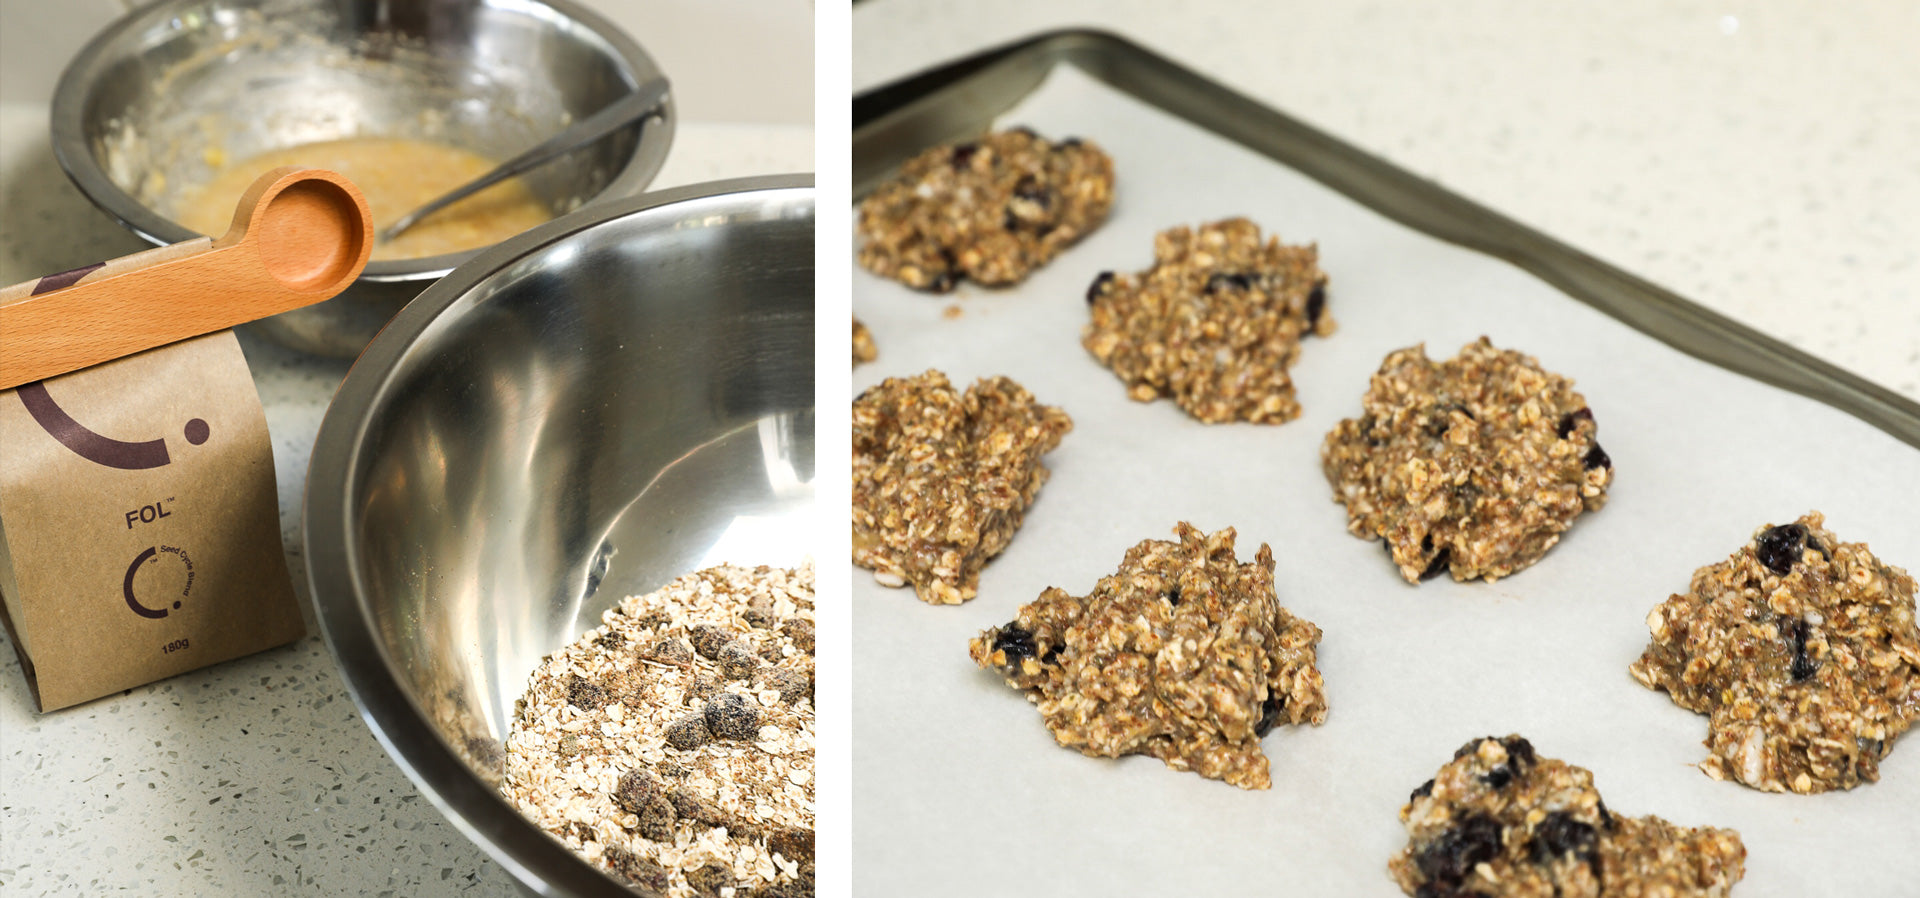 seed-cycling-oat-and-banana-cookies-seed-cycle-blend